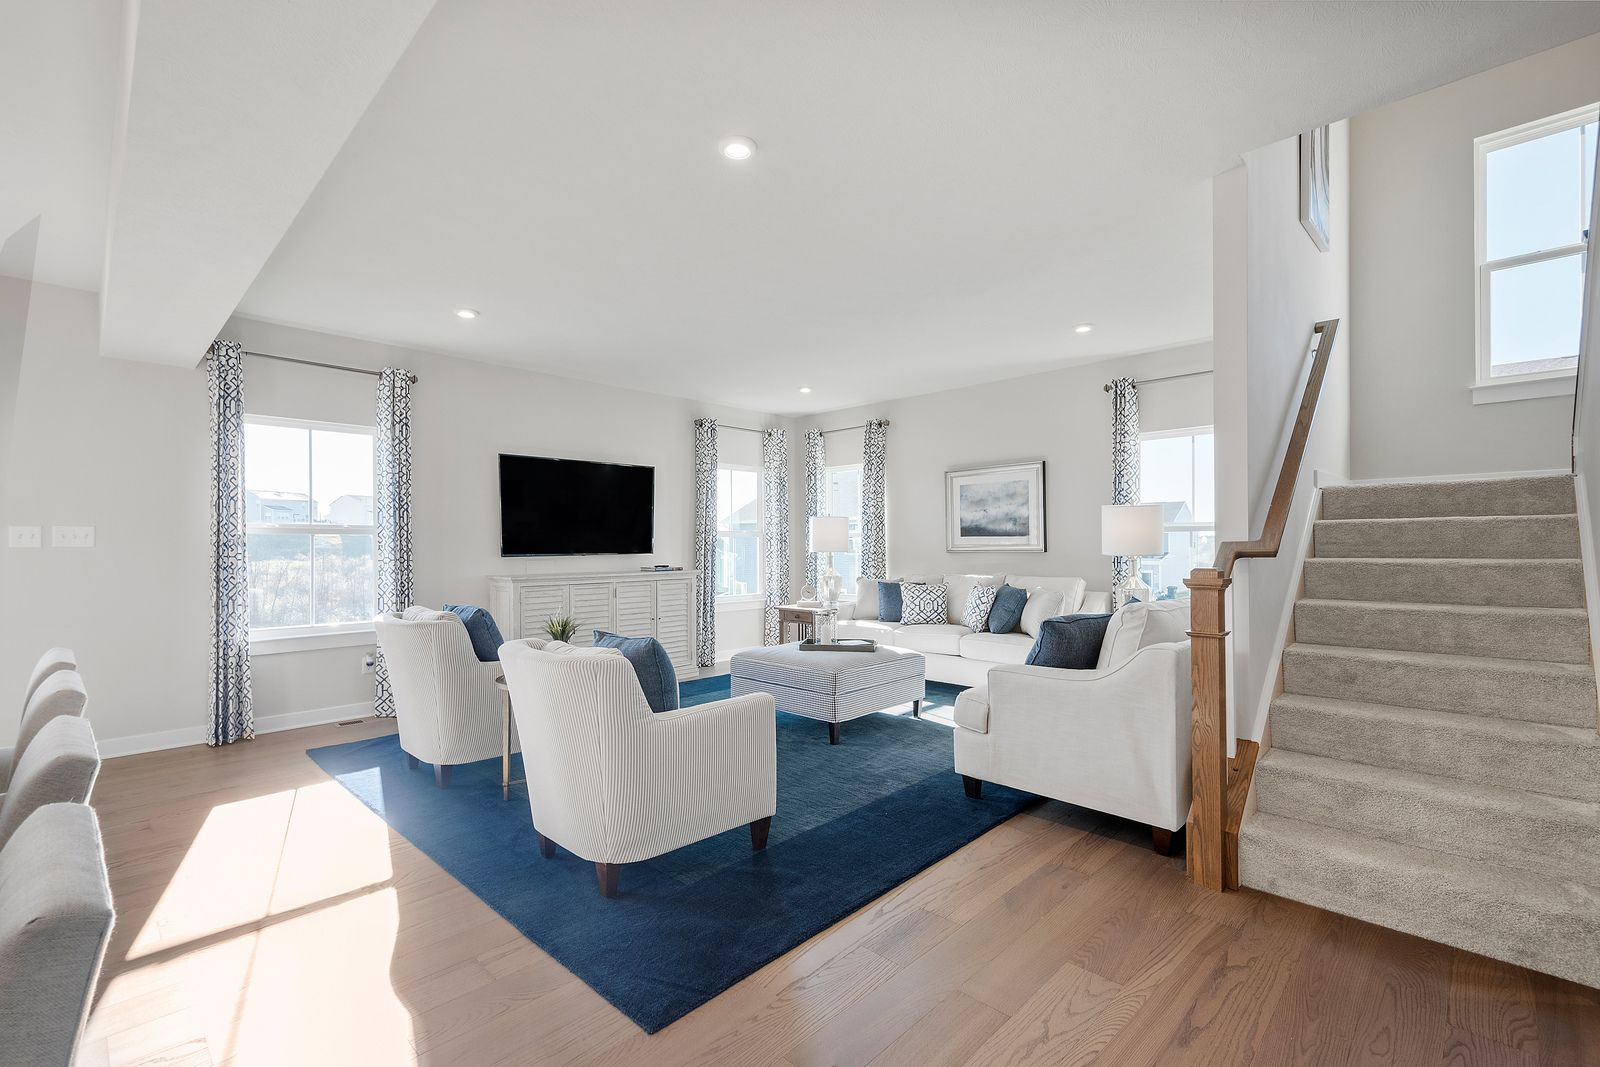 Living Area featured in the Columbia w/ Optional Finished Basement By Ryan Homes in Chicago, IL